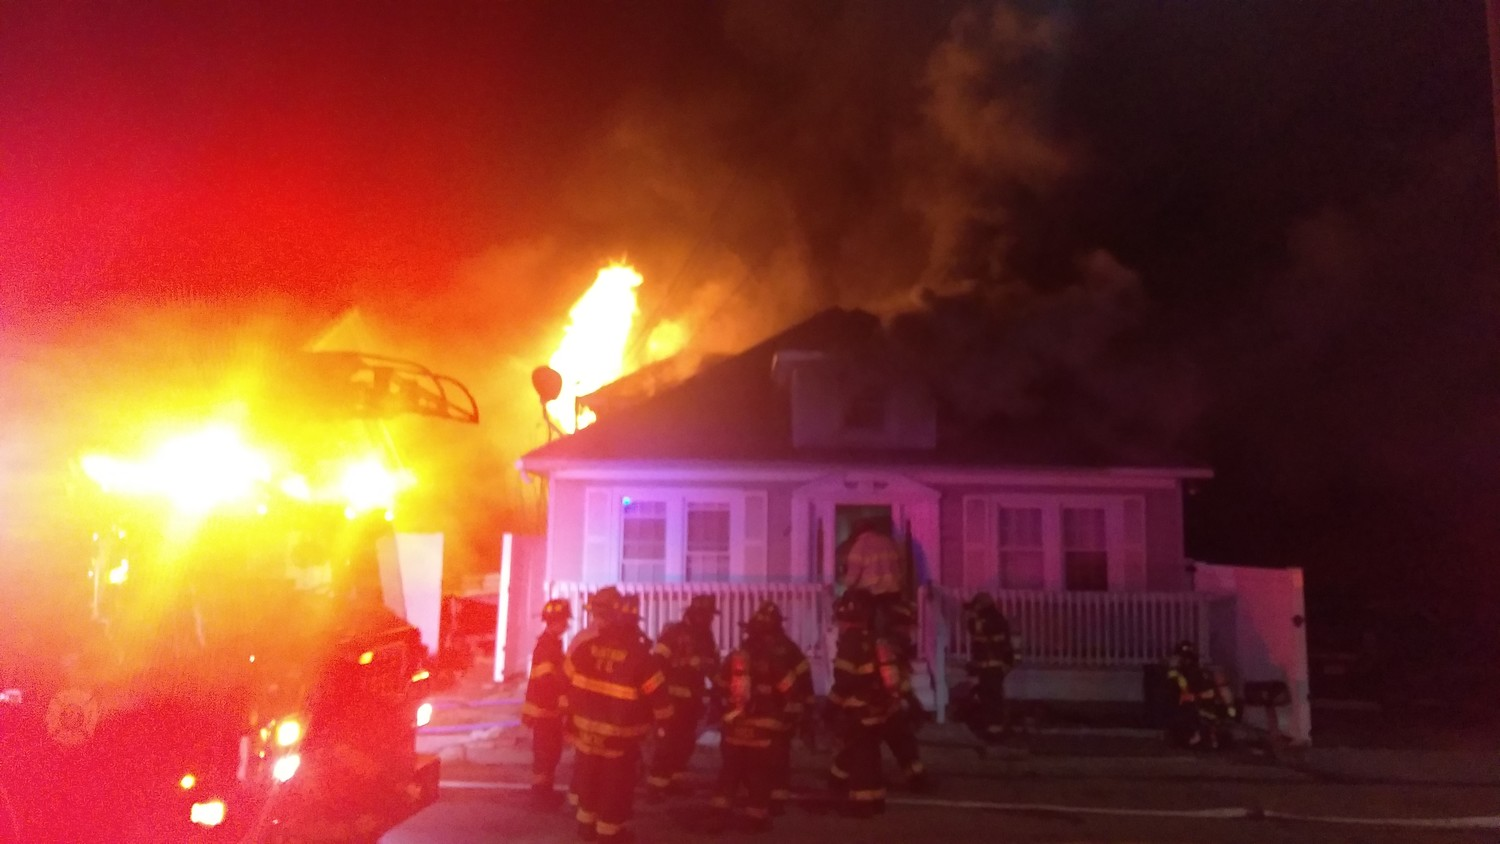 The fire rendered the home of former Wantagh fire department chief Scott Craft uninhabitable.